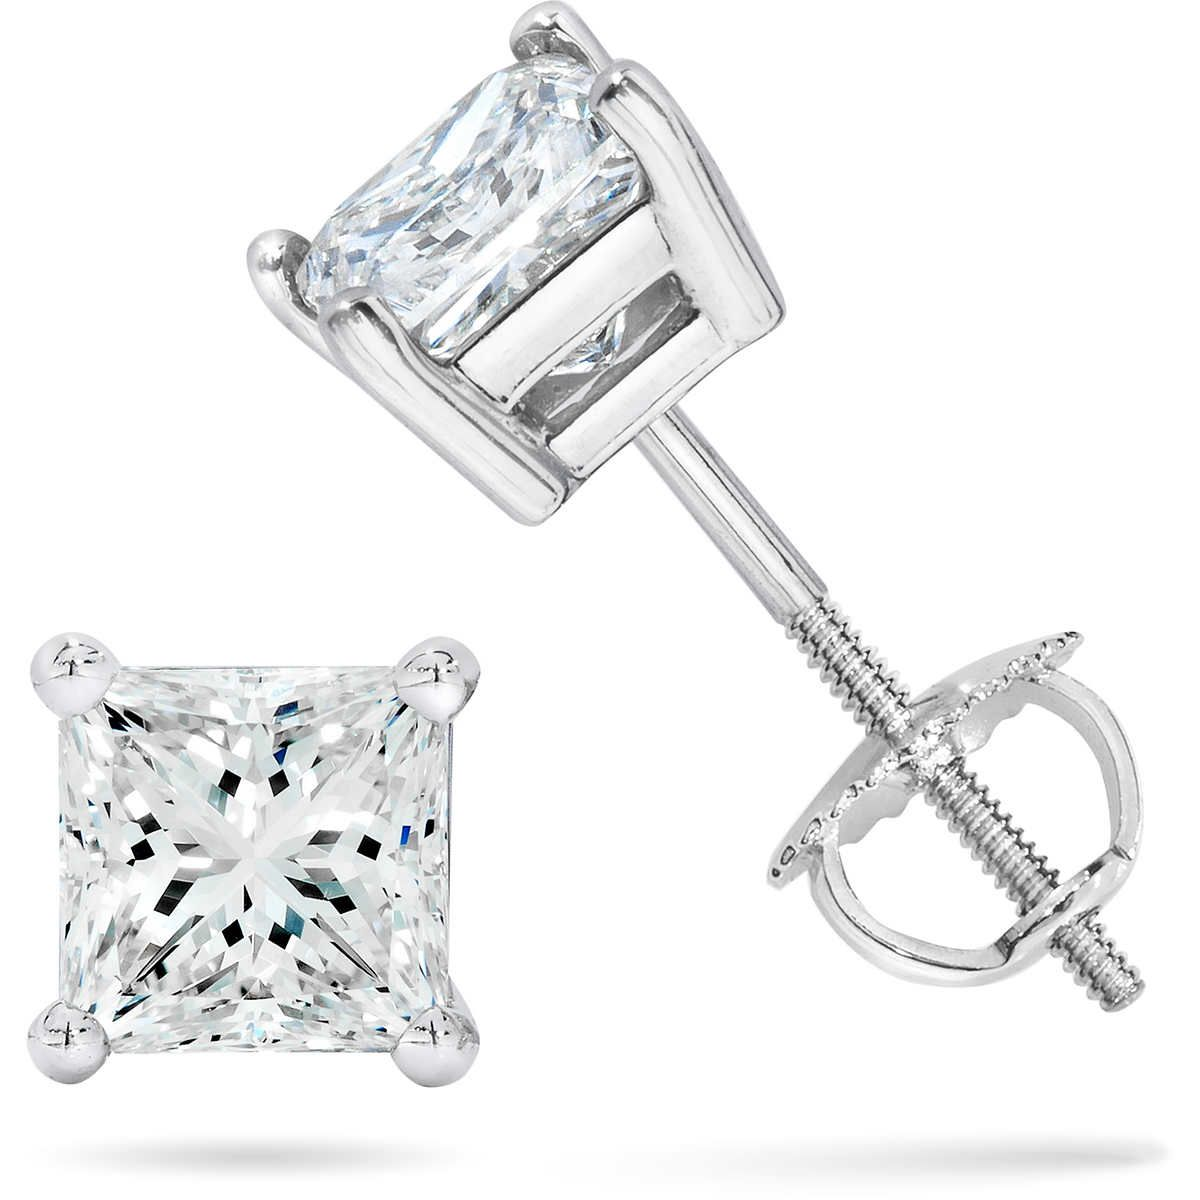 tw main queen princess lizzyworld cut white gold diamond earrings stud ct in product prev